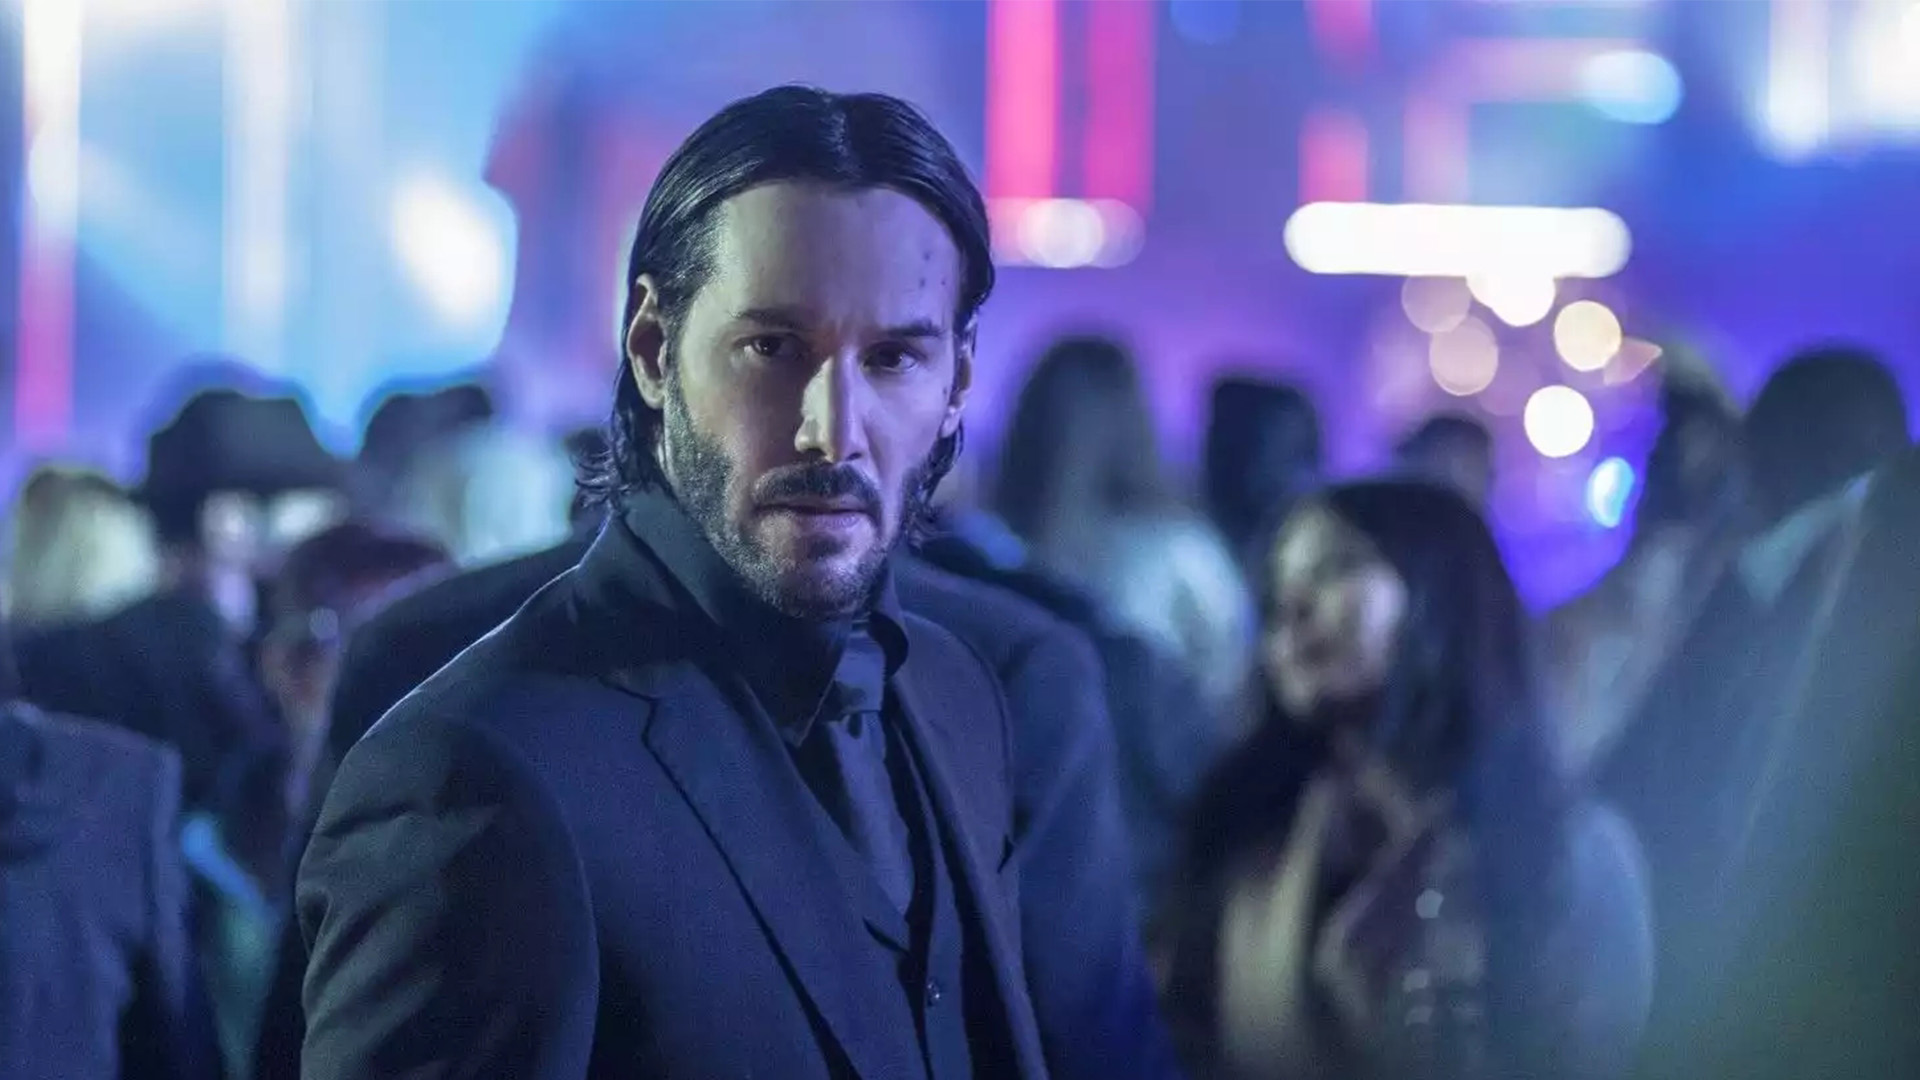 John Wick: Chapter 3 Plot Details Revealed!